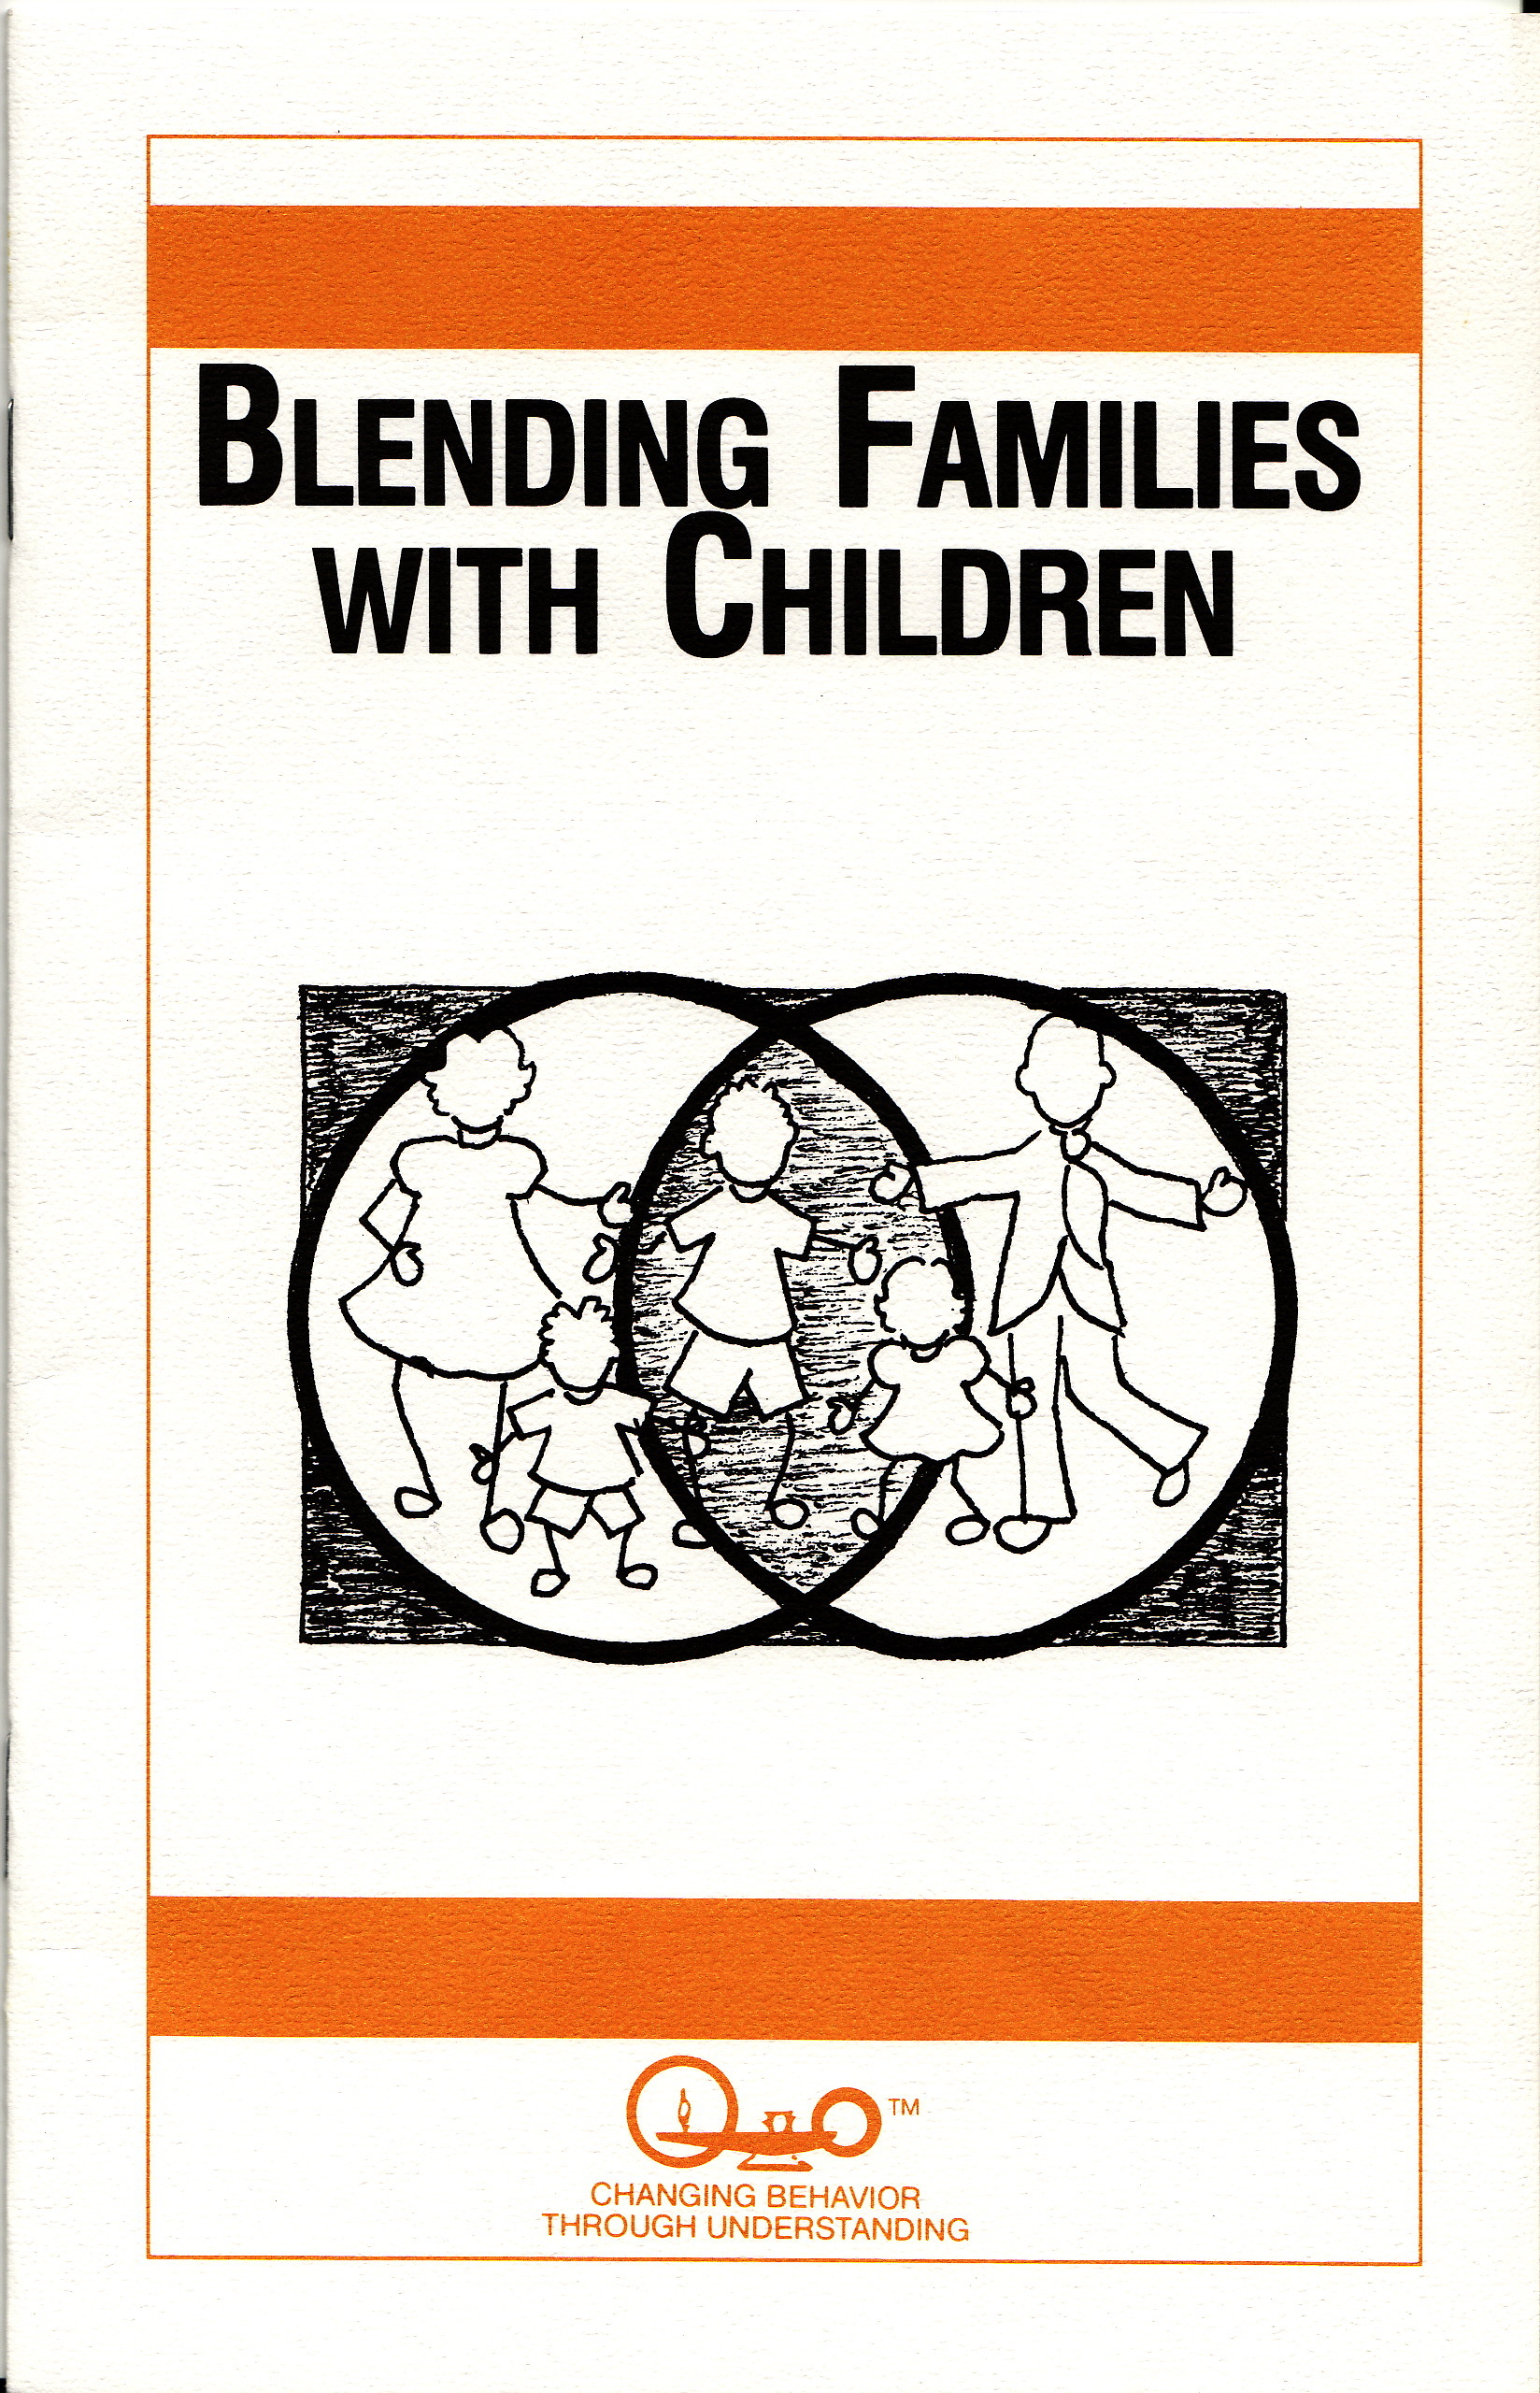 Blending Families With Children